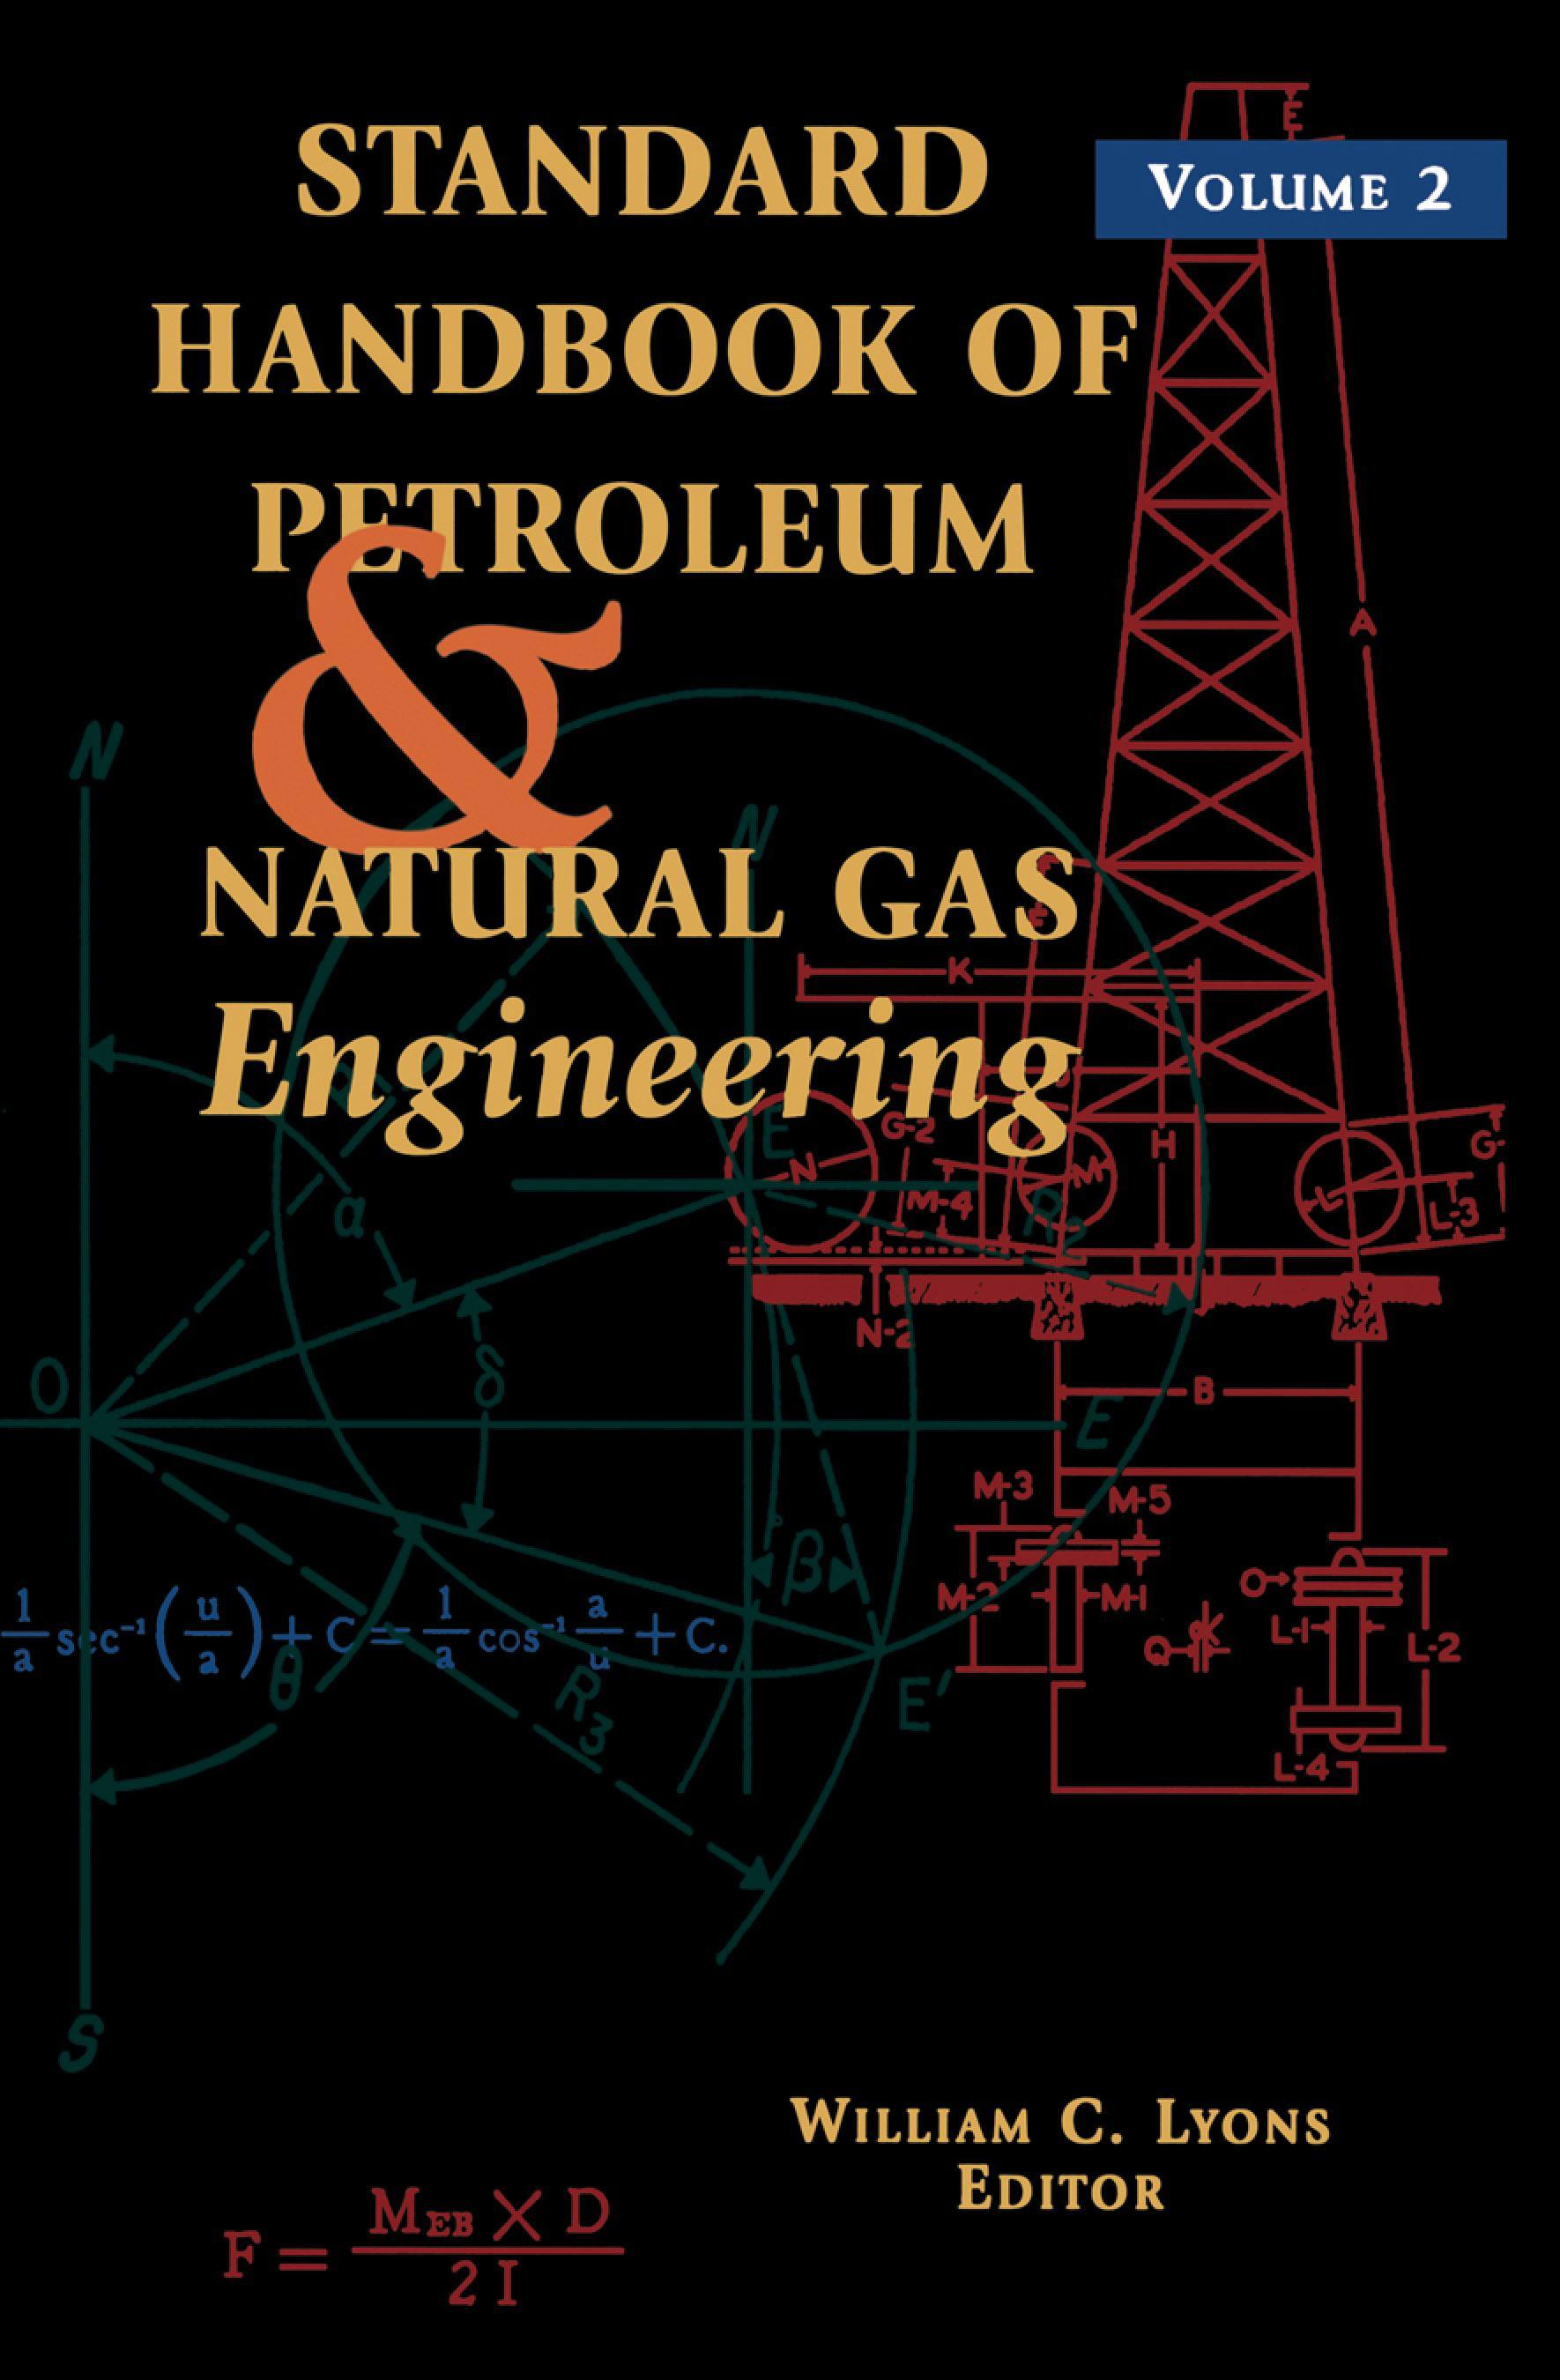 Standard Handbook of Petroleum and Natural Gas Engineering: Volume 2: Volume 2